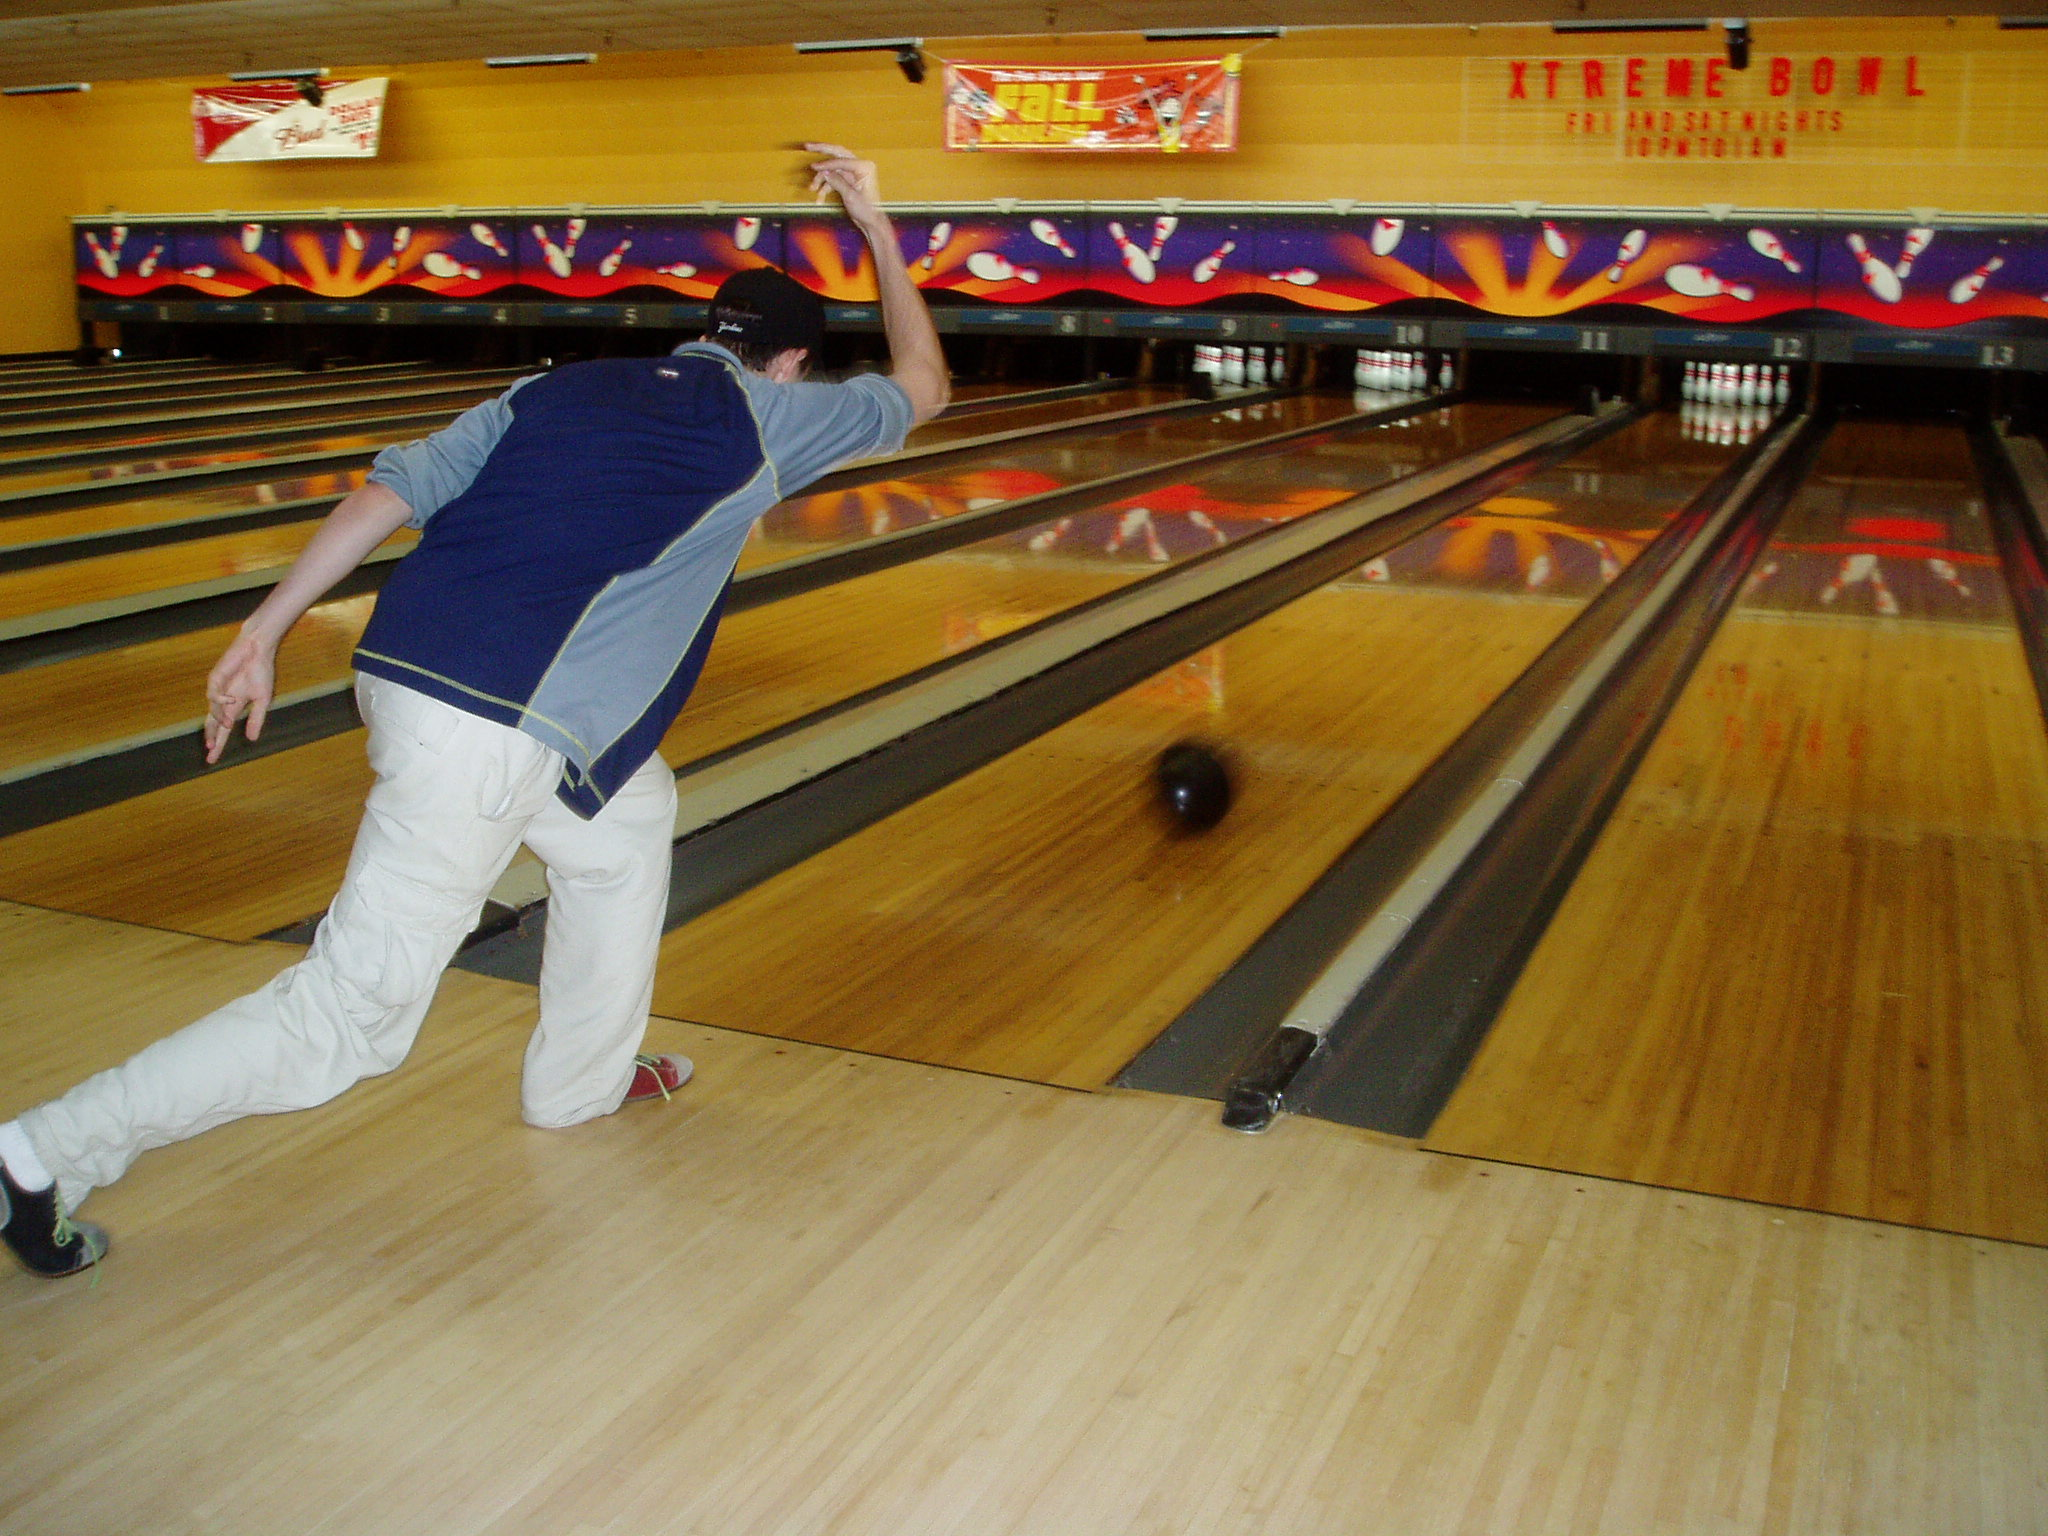 boling men Visit amazoncom for the best prices on a pair of men's bowling shoes we've got hundreds of men's beginner and professional bowling shoe styles.